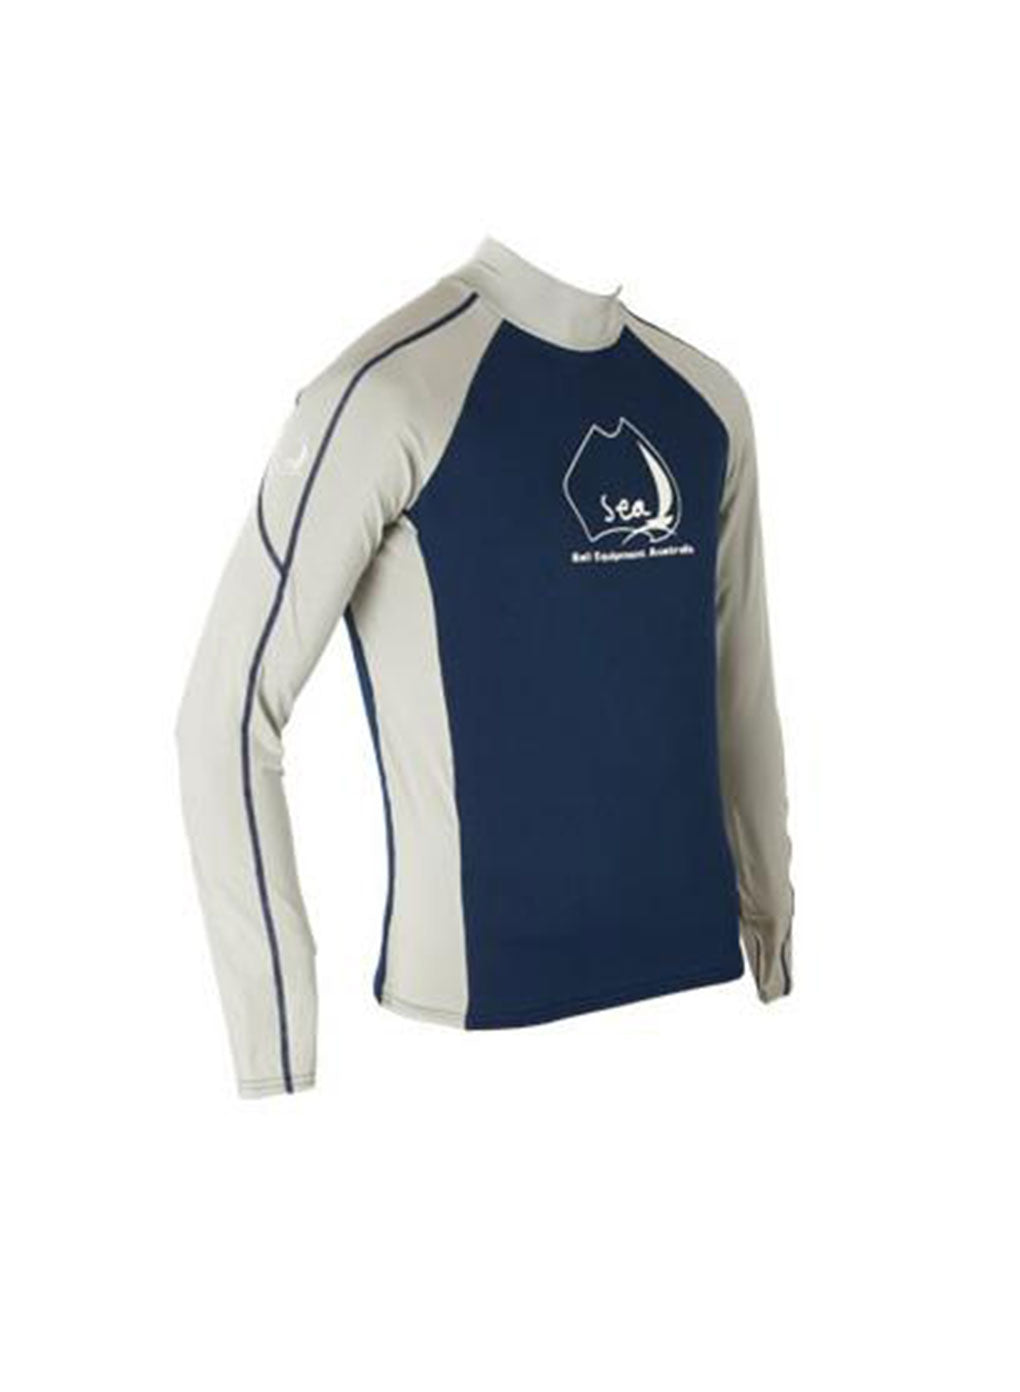 Sea Gear Neo Spandex Long Sleeve